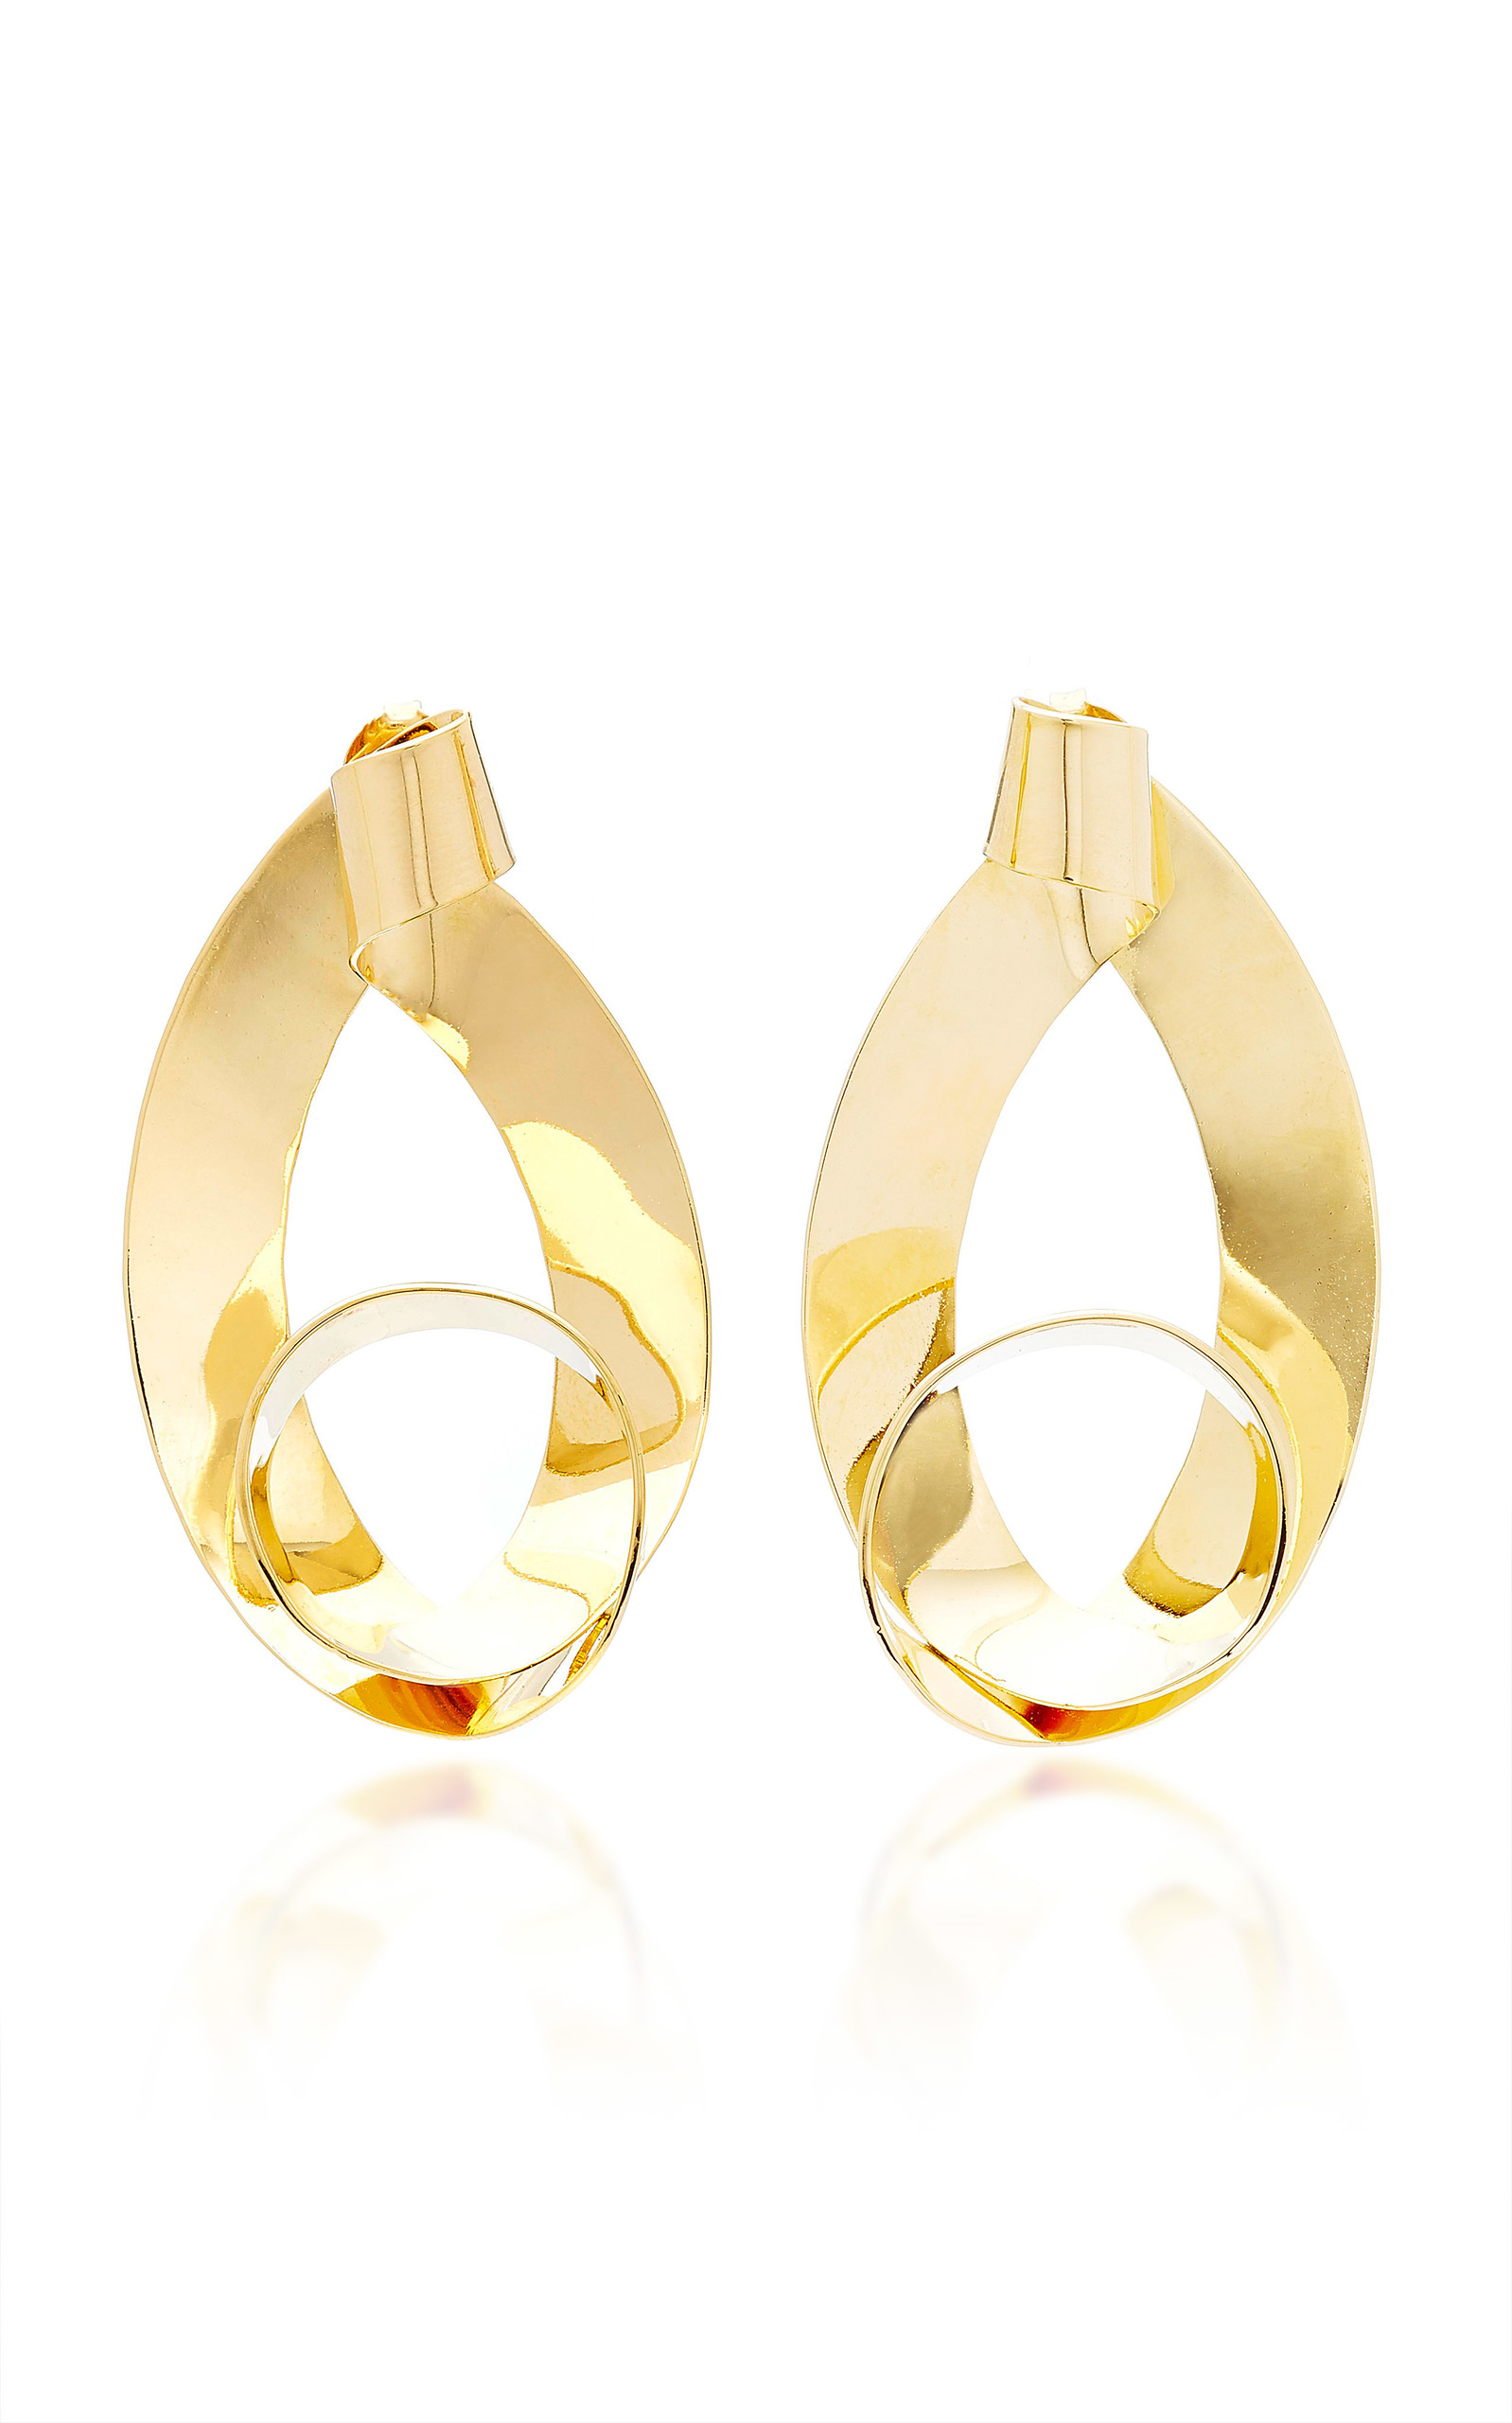 Max 24K Gold-Plated Earrings Bia Daidone PrM14j